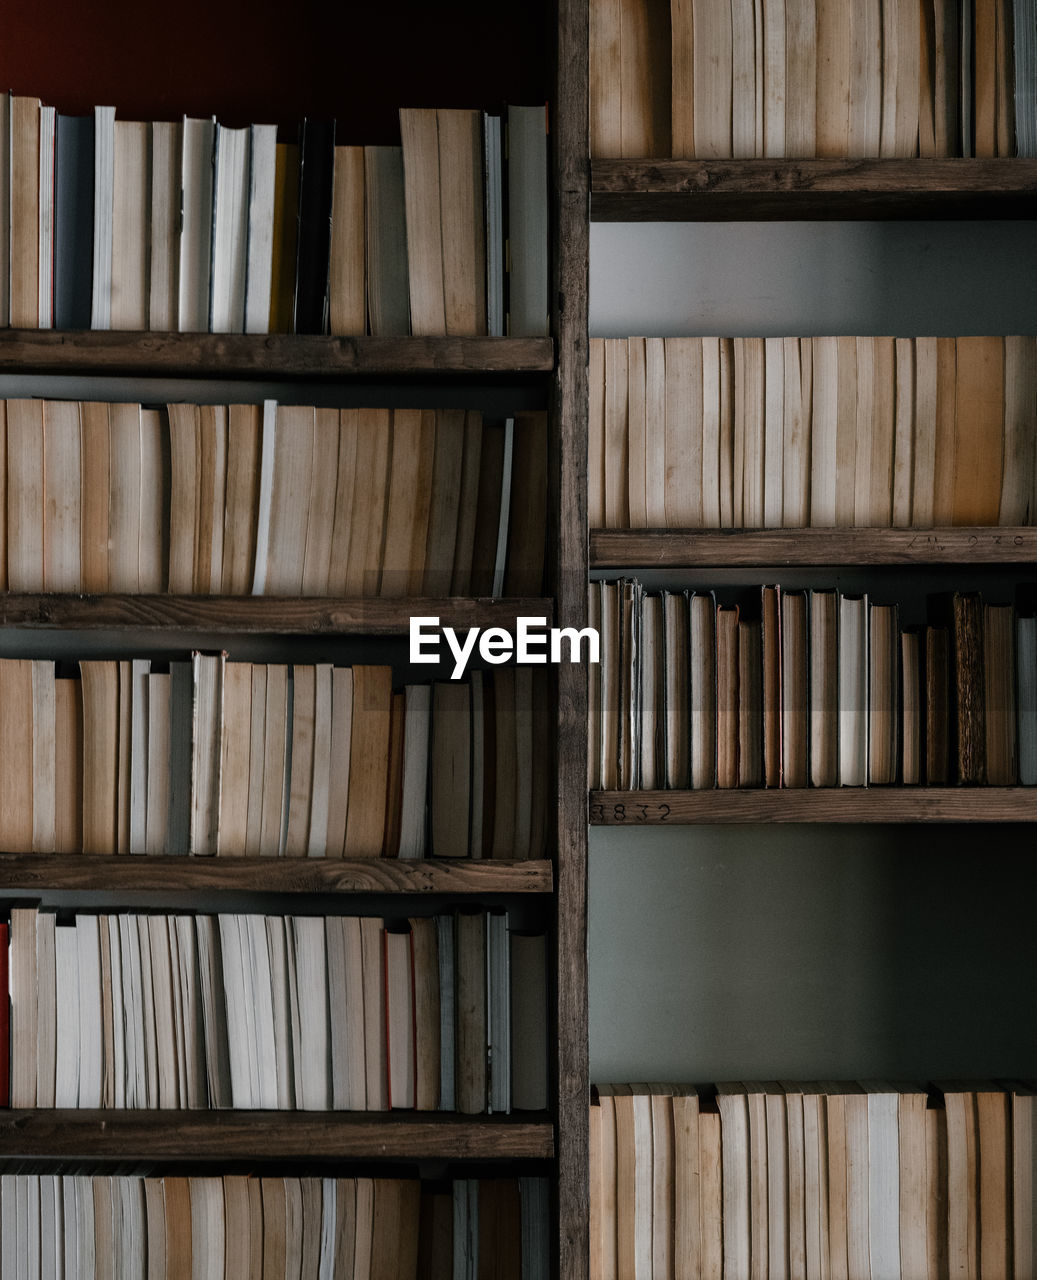 Full Frame Shot Of Books In Shelf